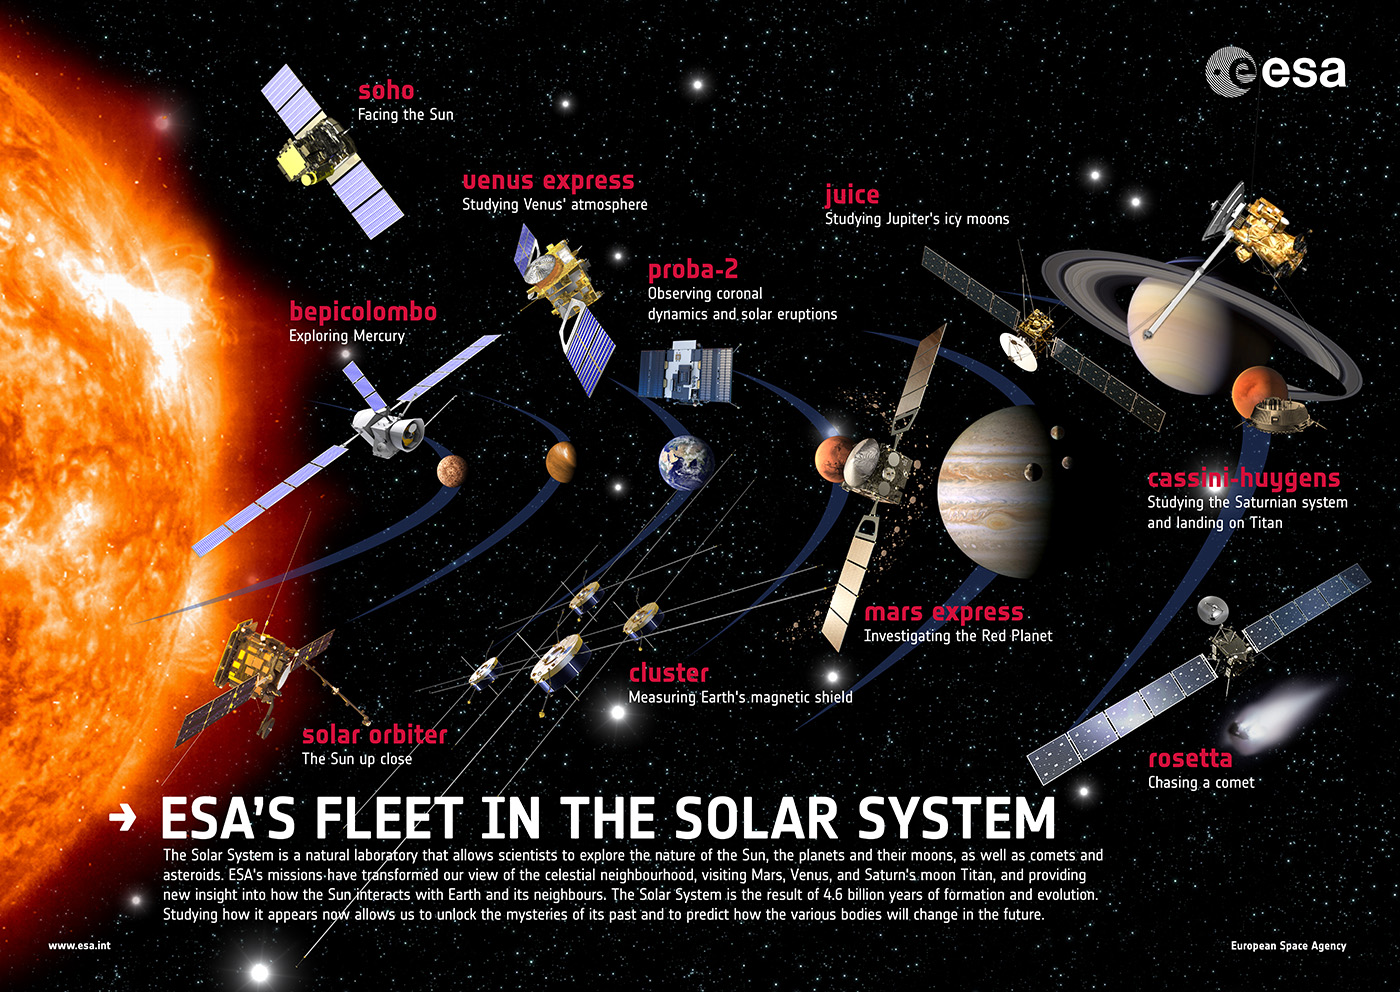 http://sci.esa.int/science-e-media/img/e3/ESA_Fleet_In_Solar_System_poster_2014.jpg